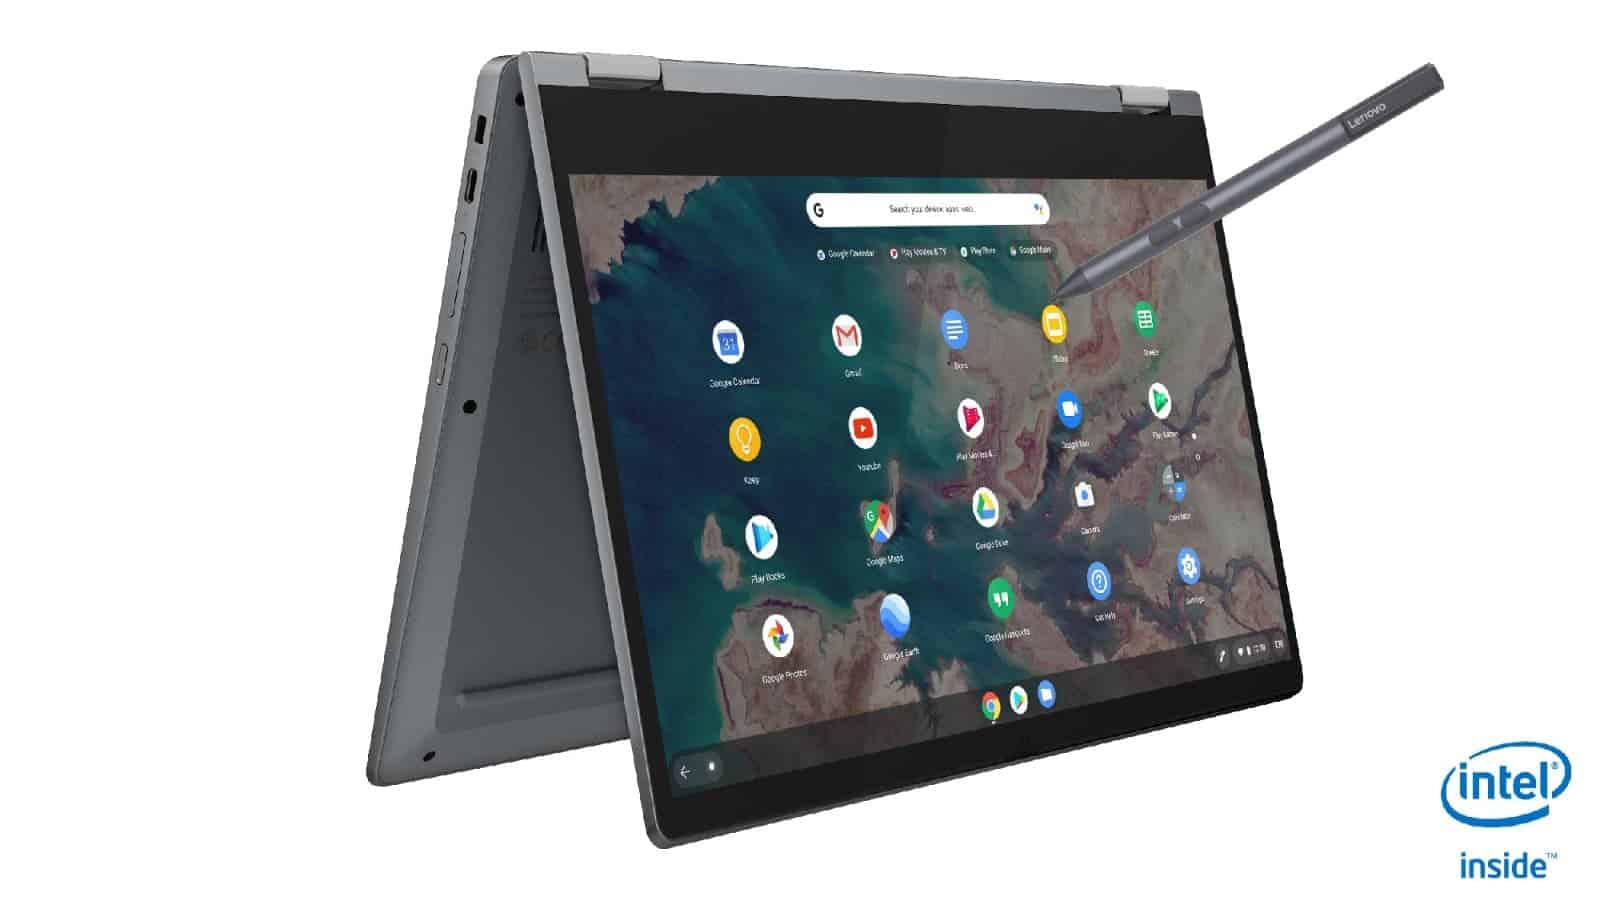 17 IdeaPad Flex 5 Chromebook 13 Graphite Grey Right Tent Mode with Pen